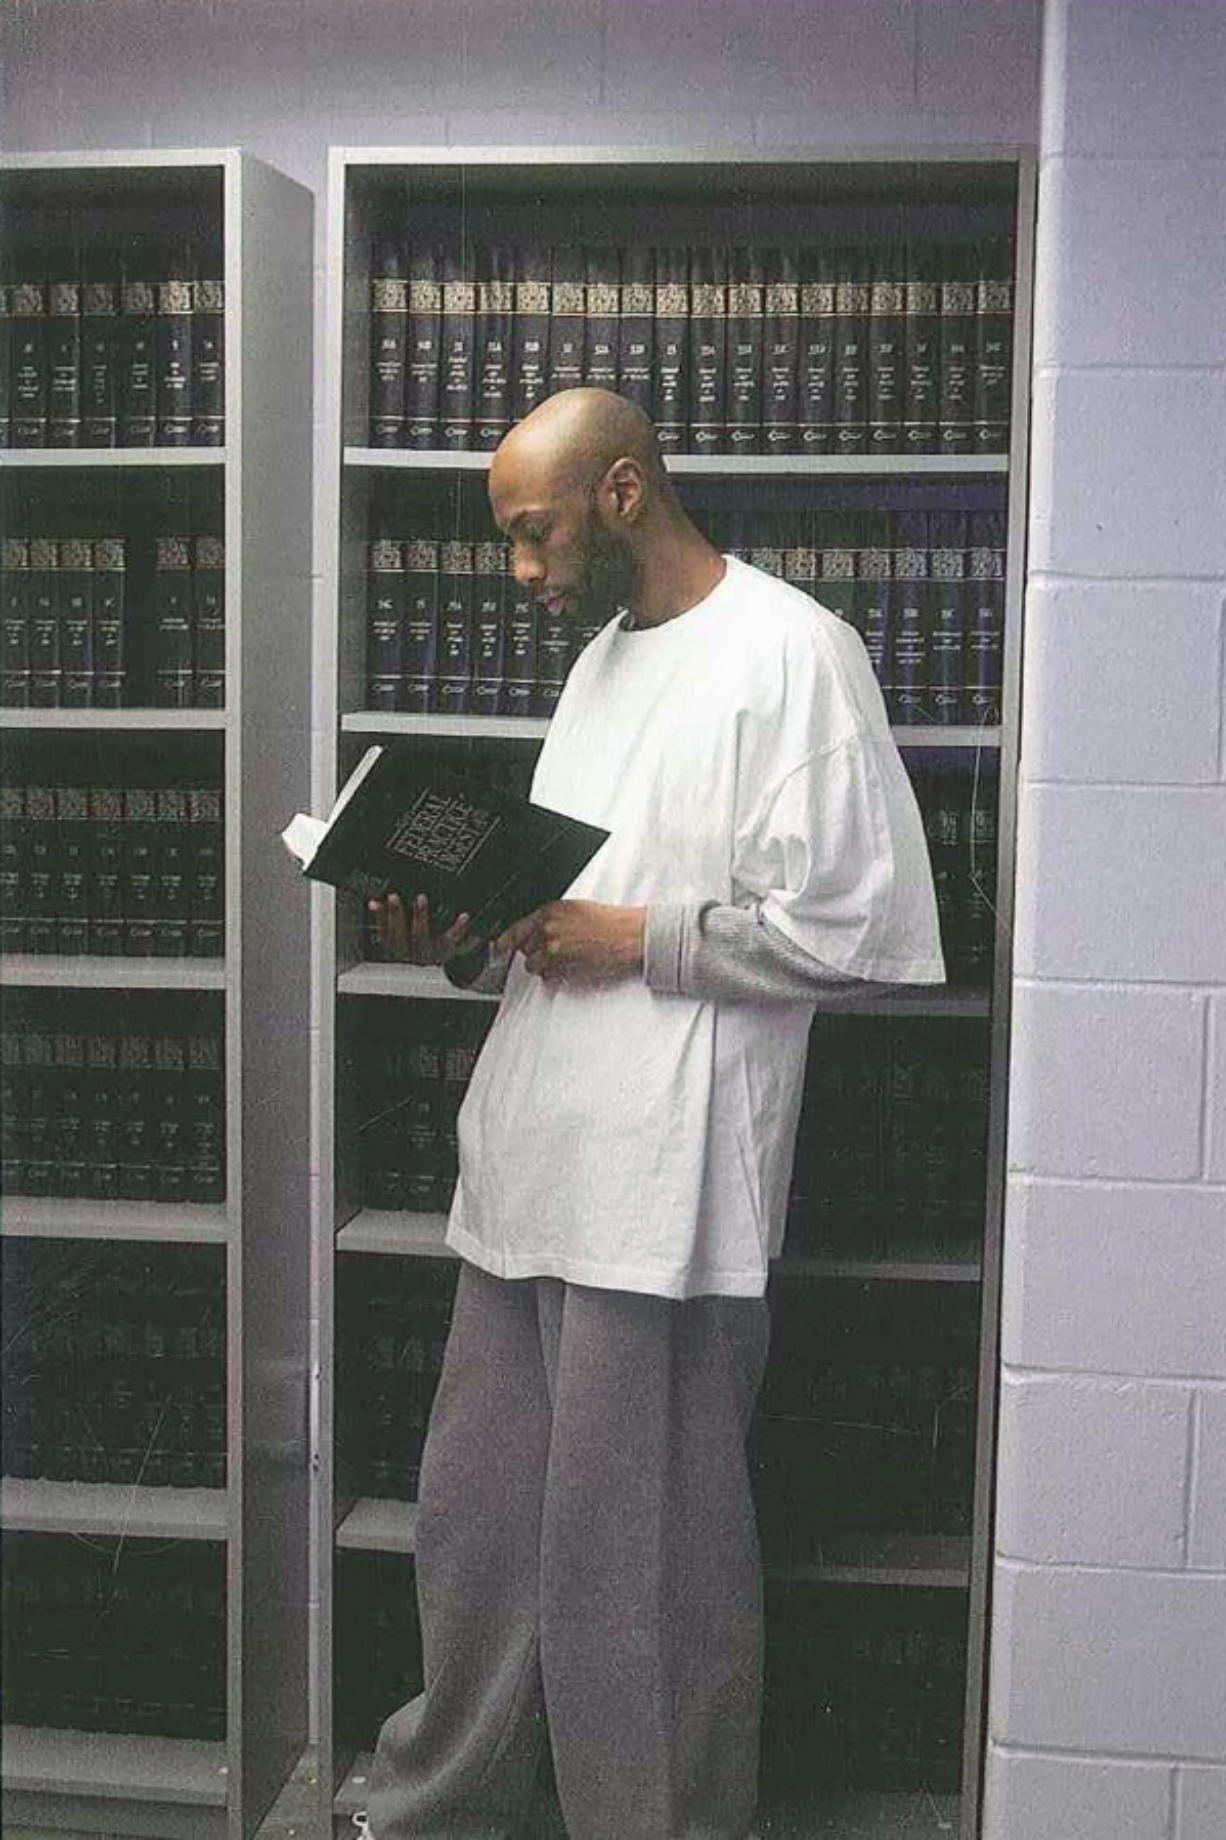 This 2015 photo provided by Shawn Nolan Chief, Capital Habeas Unit Community Federal Defender Office for the Eastern District of Pennsylvania, shows Dustin Higgs at the Federal Prison in Terre Haute, Ind. Higgs, the last federal inmate facing execution before President Donald Trump leaves office was sentenced to death for the killings of three women in a Maryland wildlife refuge in 1996. Higgs is scheduled to be executed on Friday, Jan. 15, 2021, at the federal prison in Terre Haute.